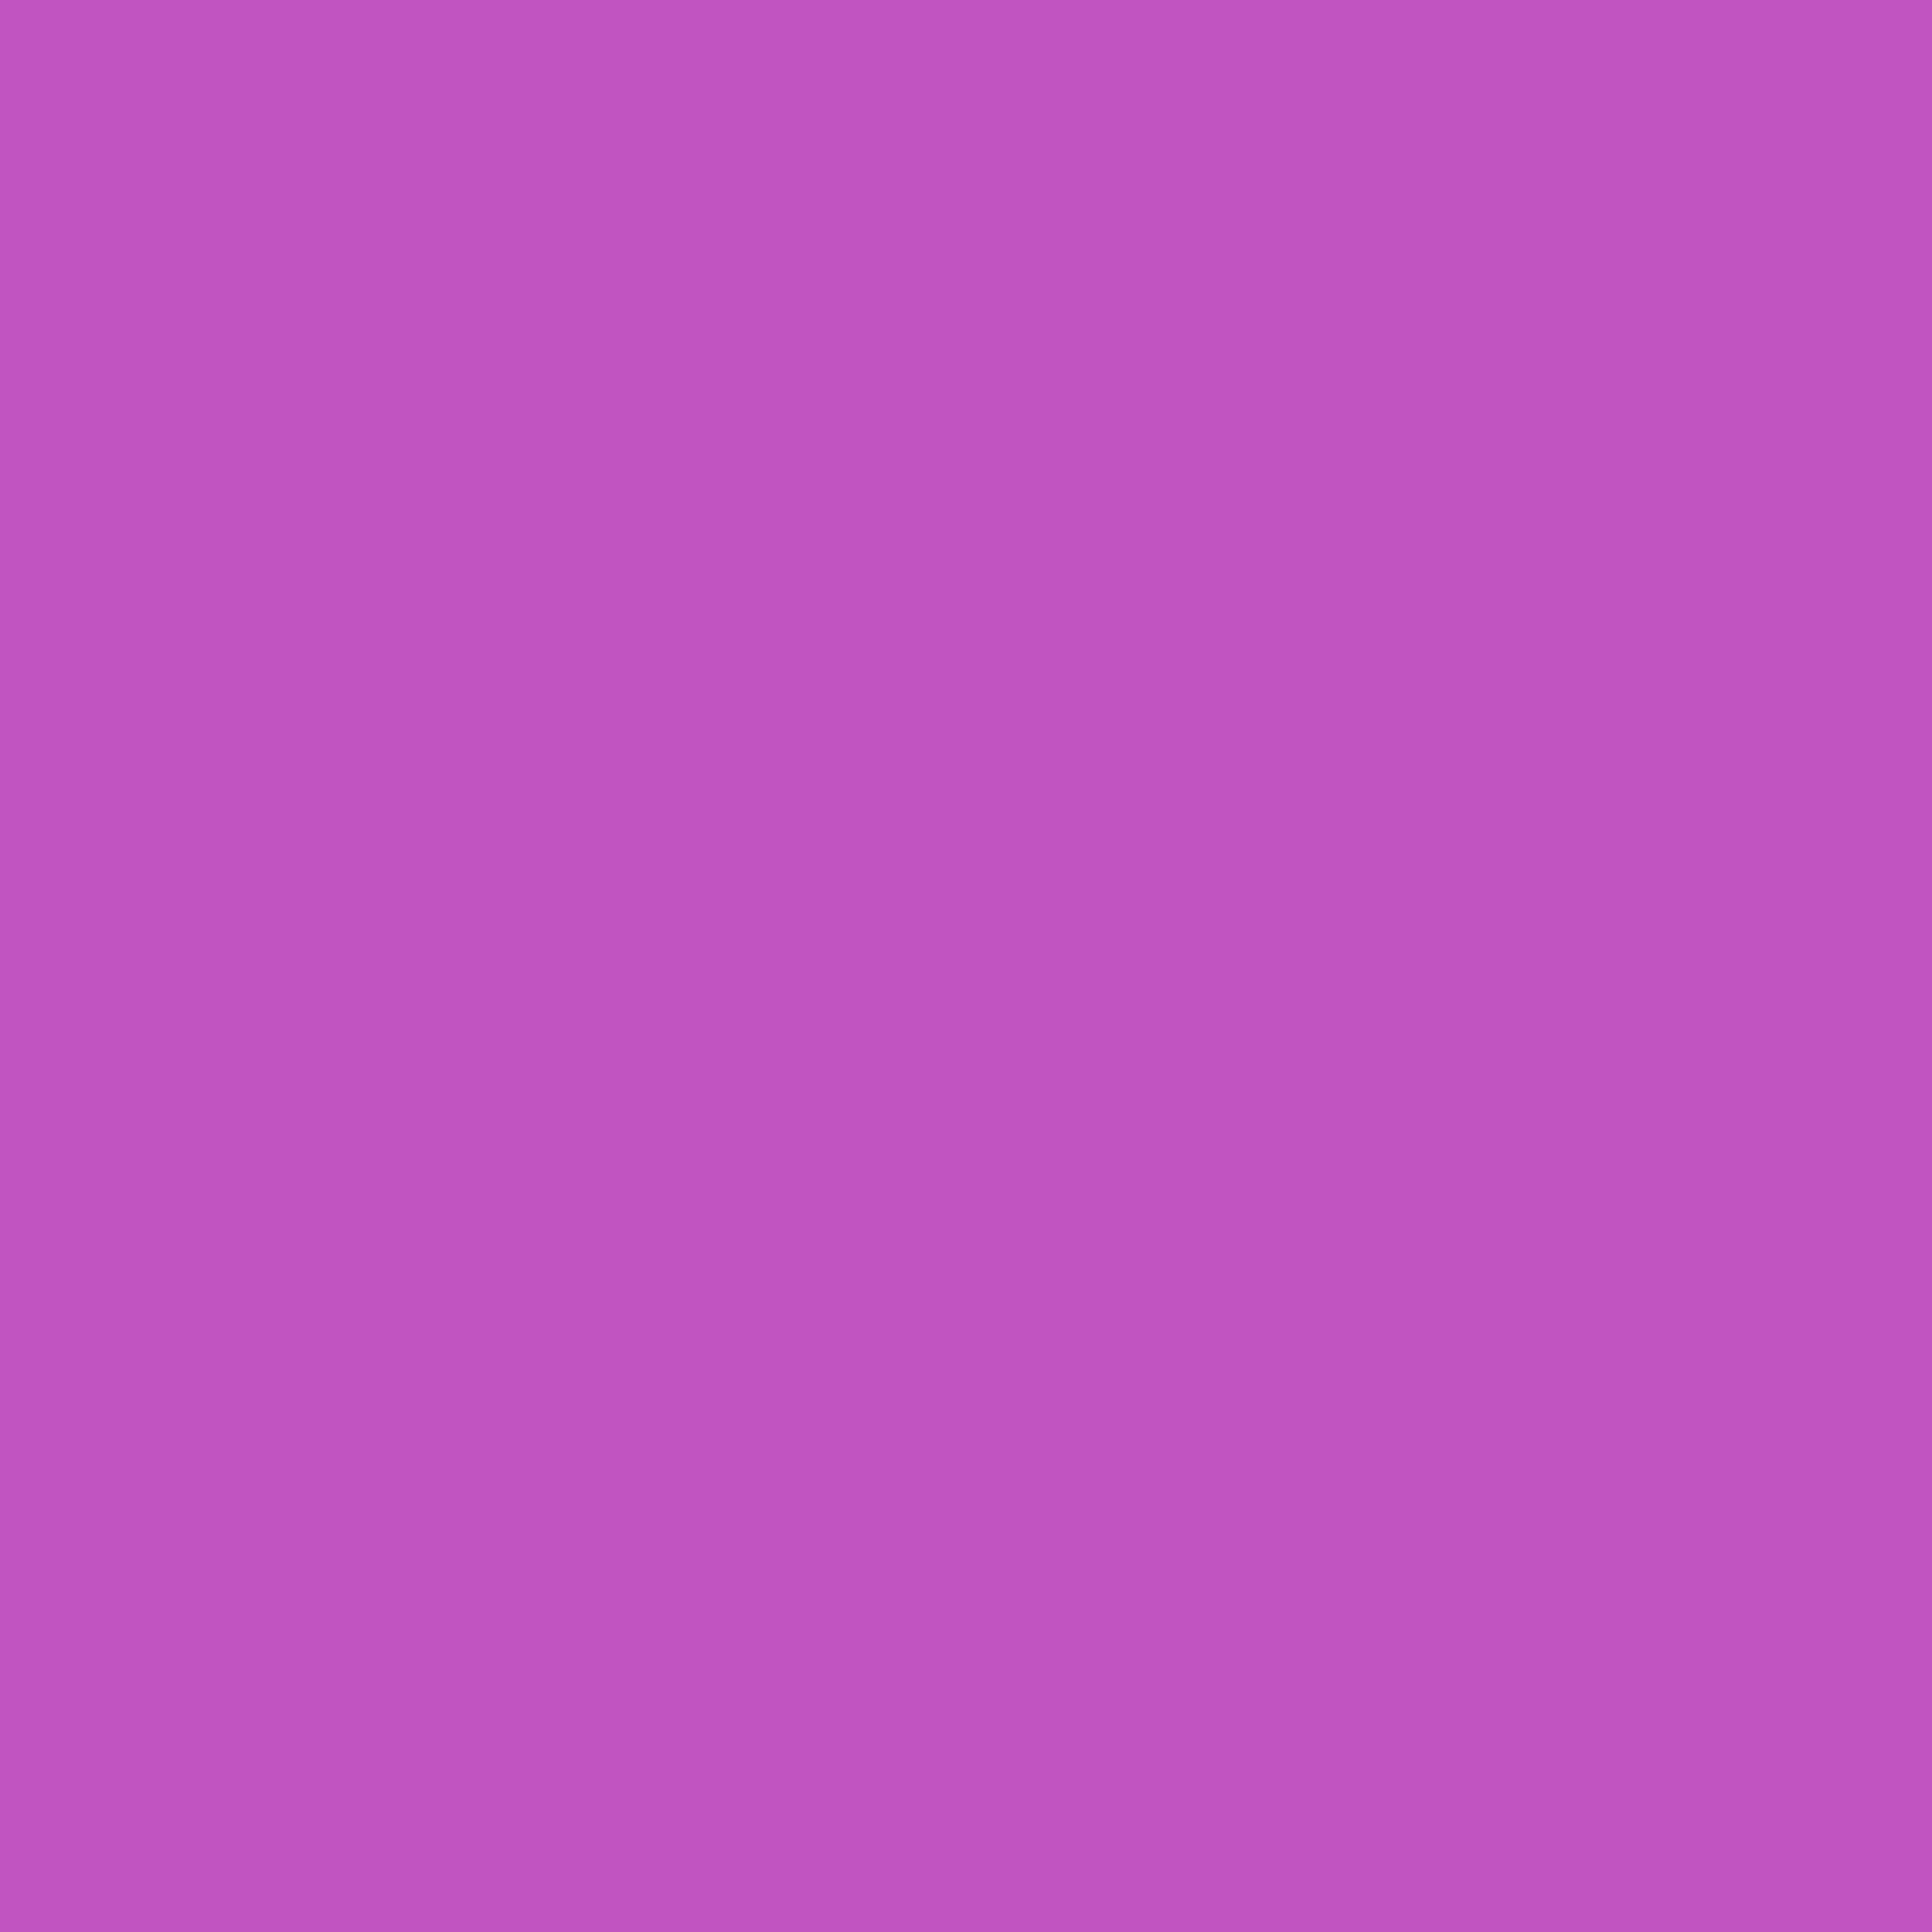 2732x2732 Deep Fuchsia Solid Color Background